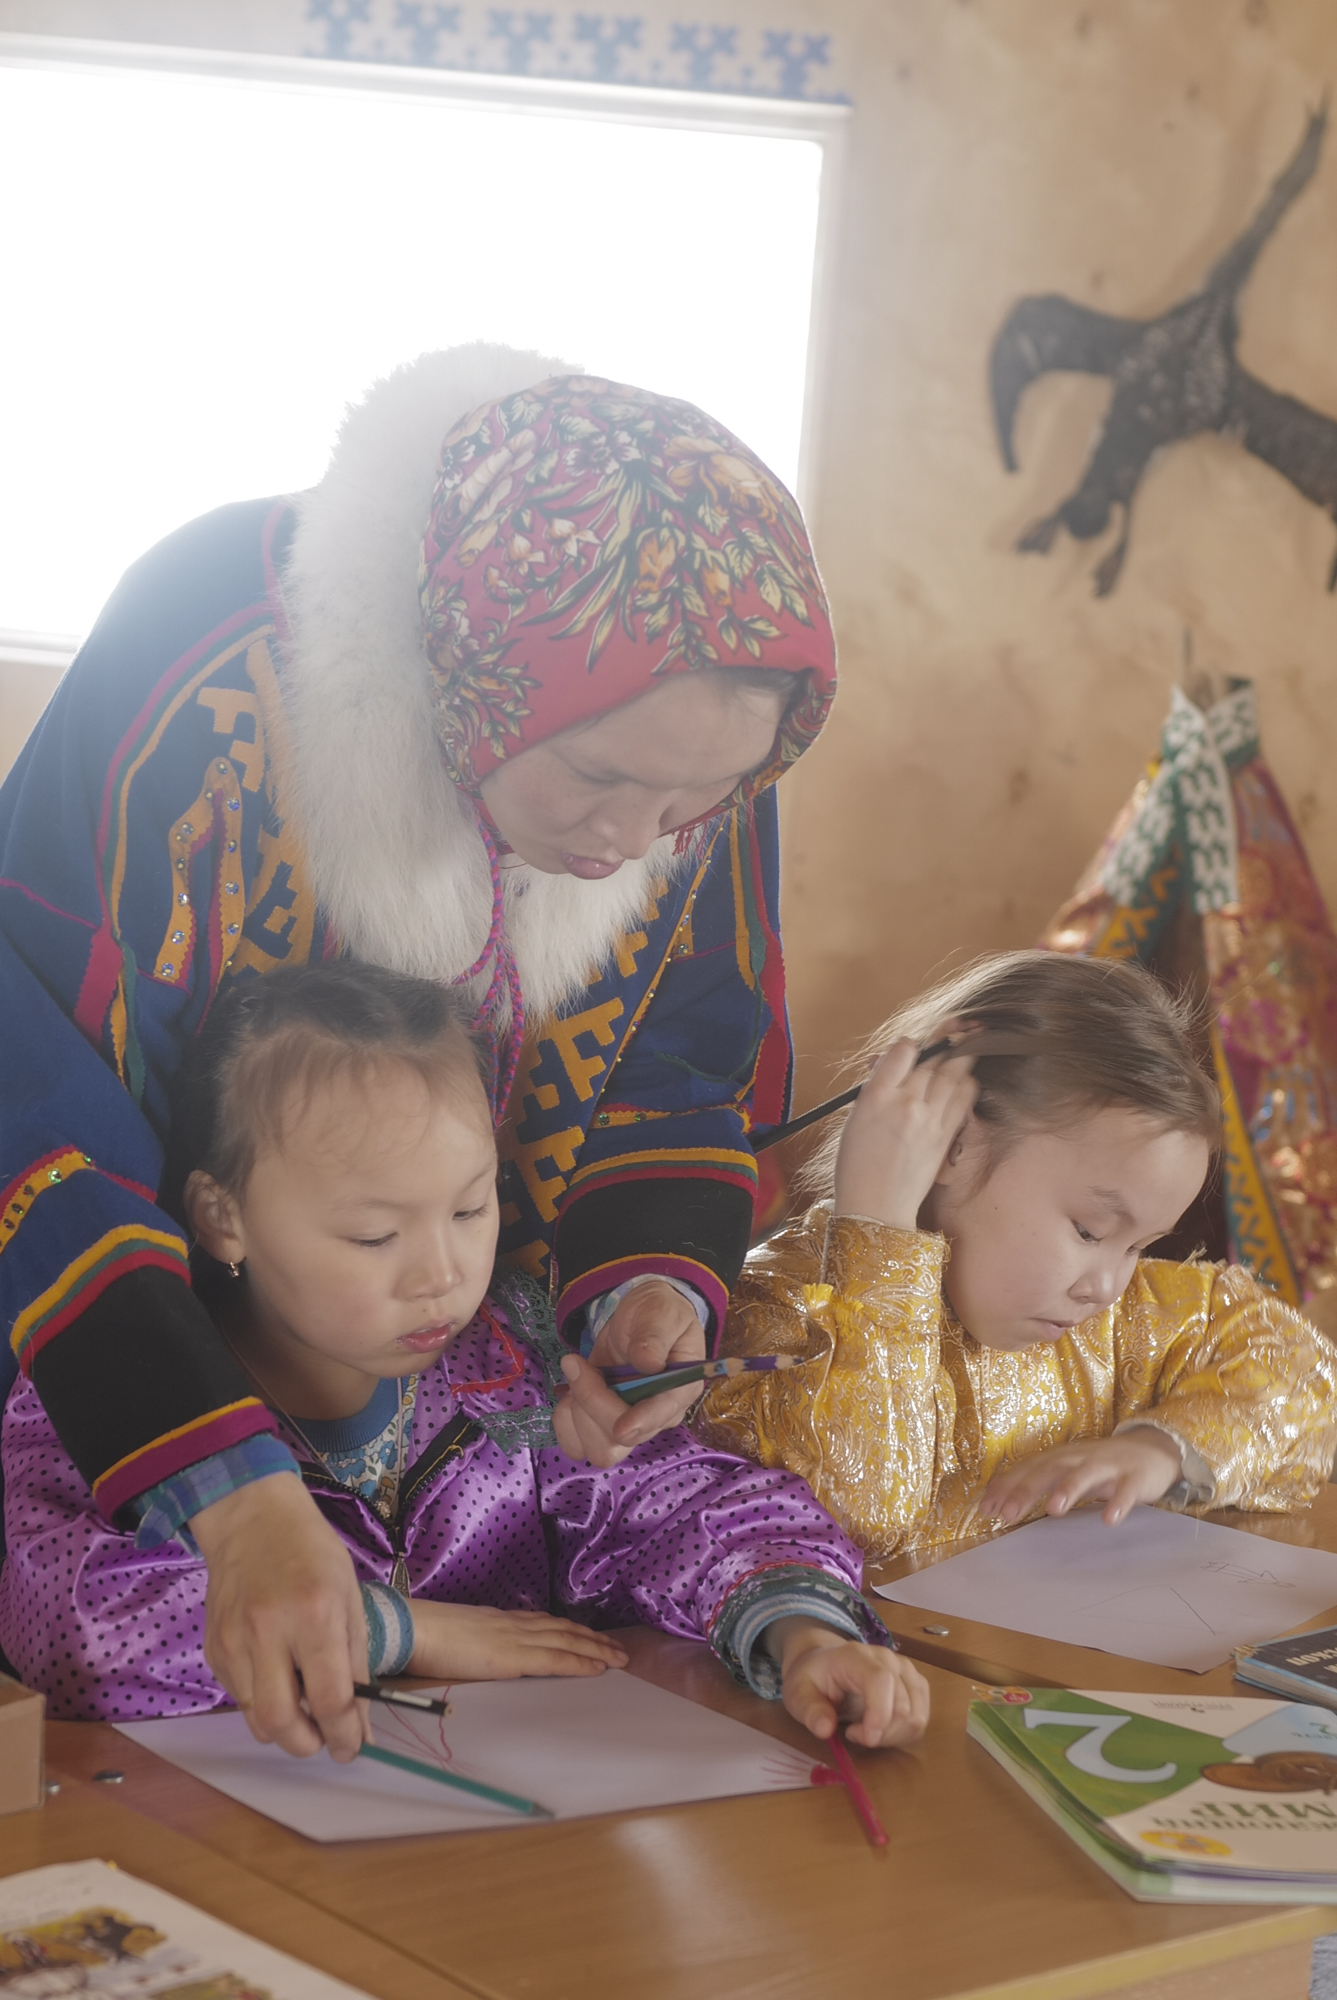 Nenets school teacher is teaching her students in the classroom. Photographed with Leica Q2, Siberia, 2019.  ©  Rosalynn Tay.